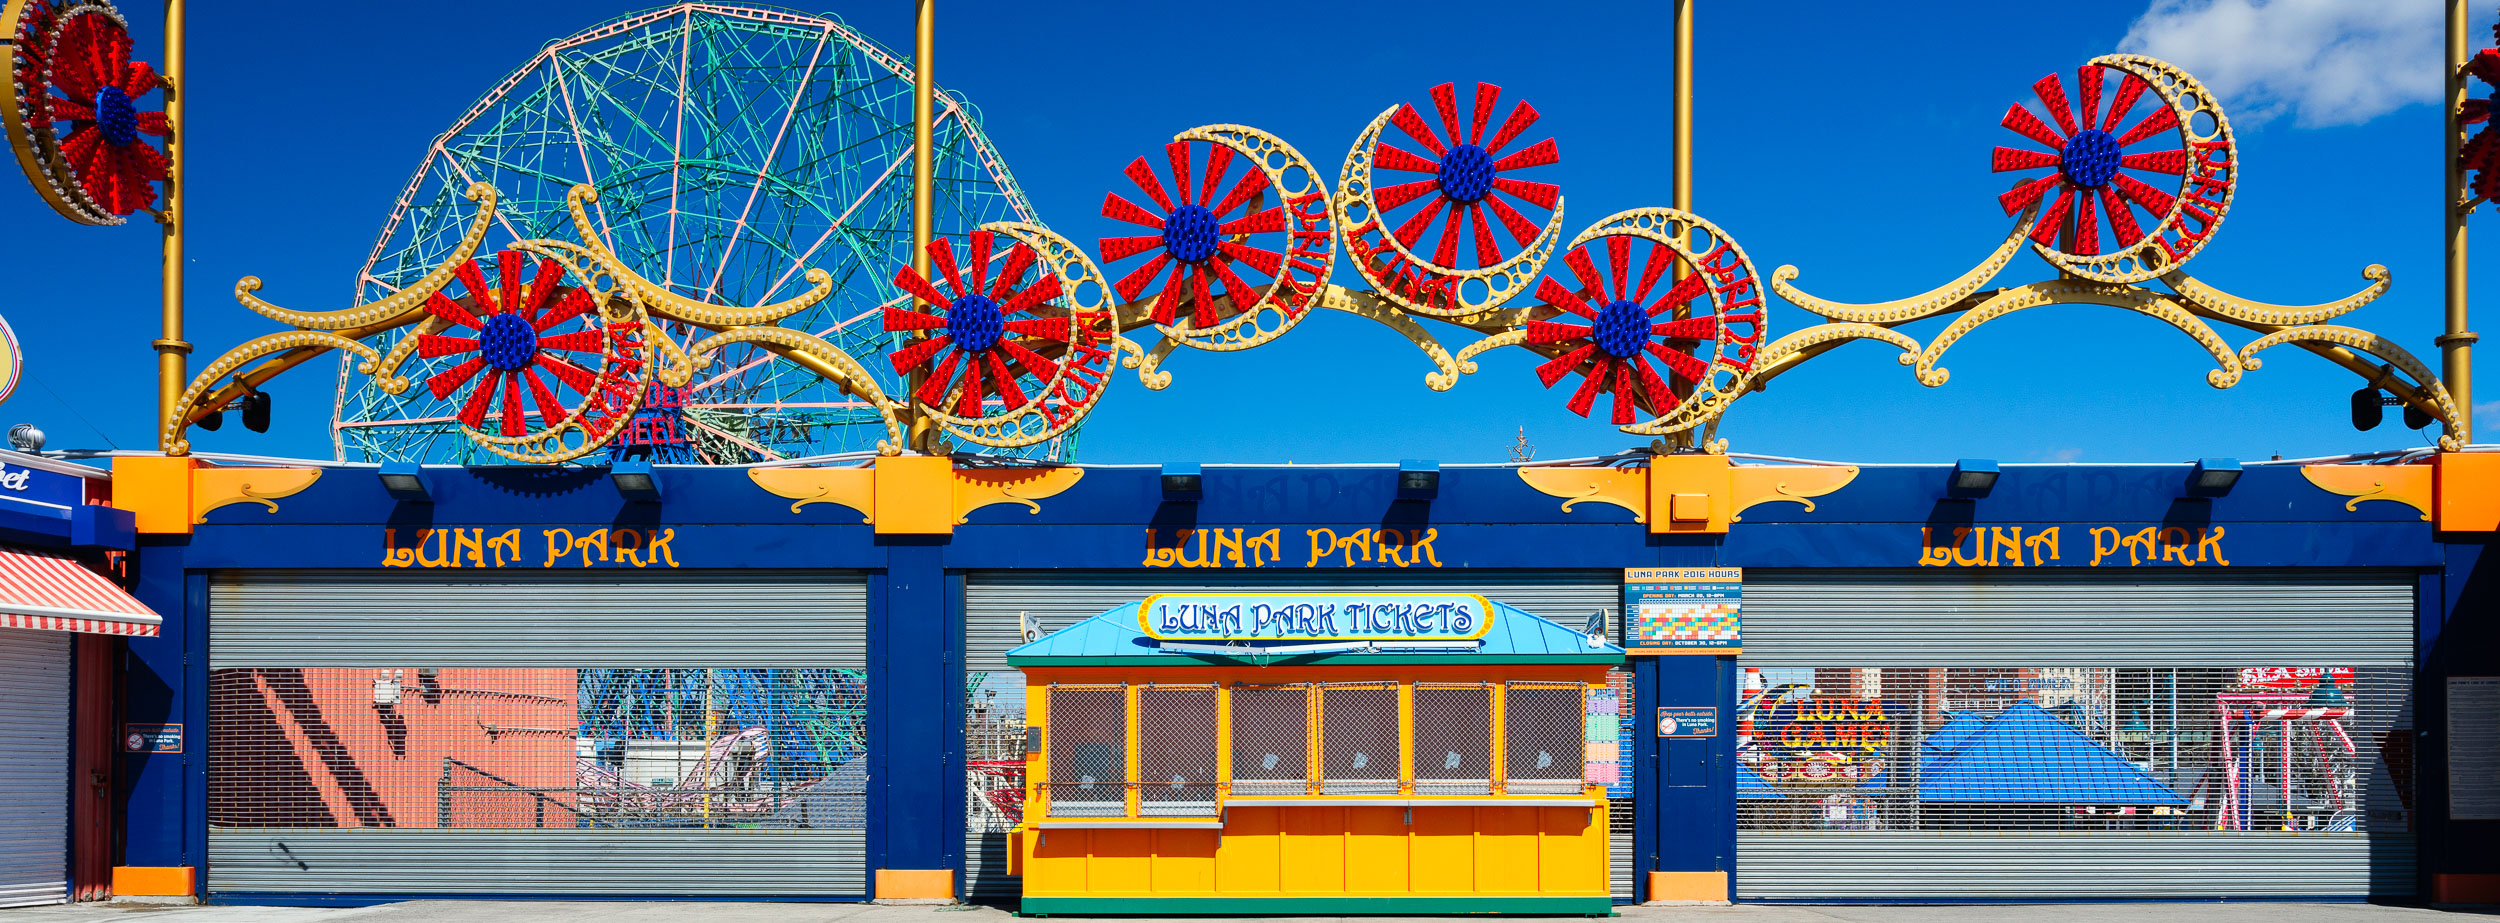 Luna Park entrance - beautifully painted and ready for opening day